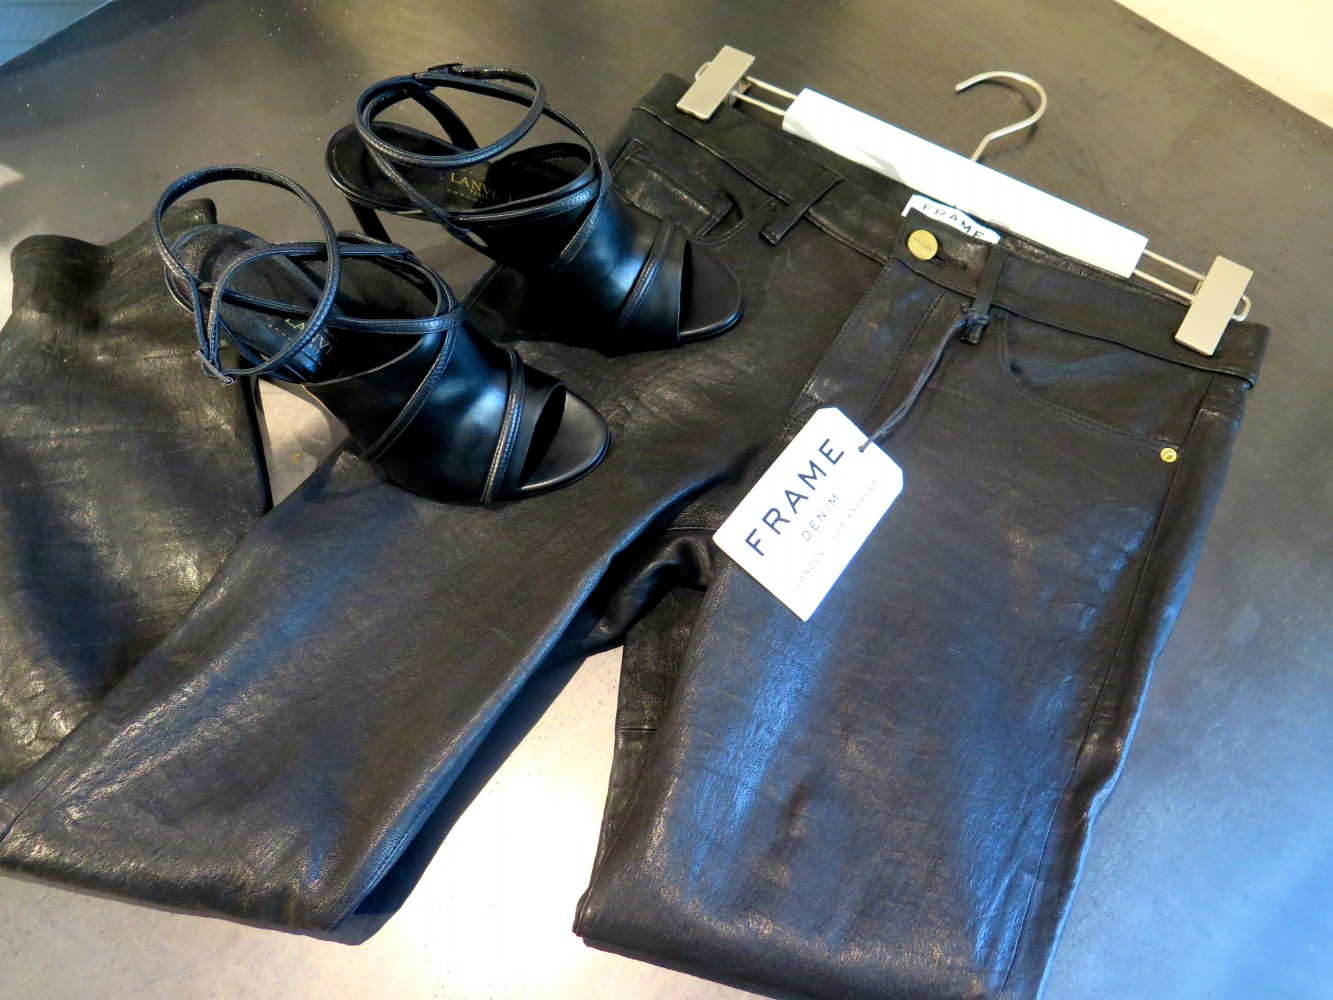 Lovely shoes from LANVIN and leather pants from Frame Denim